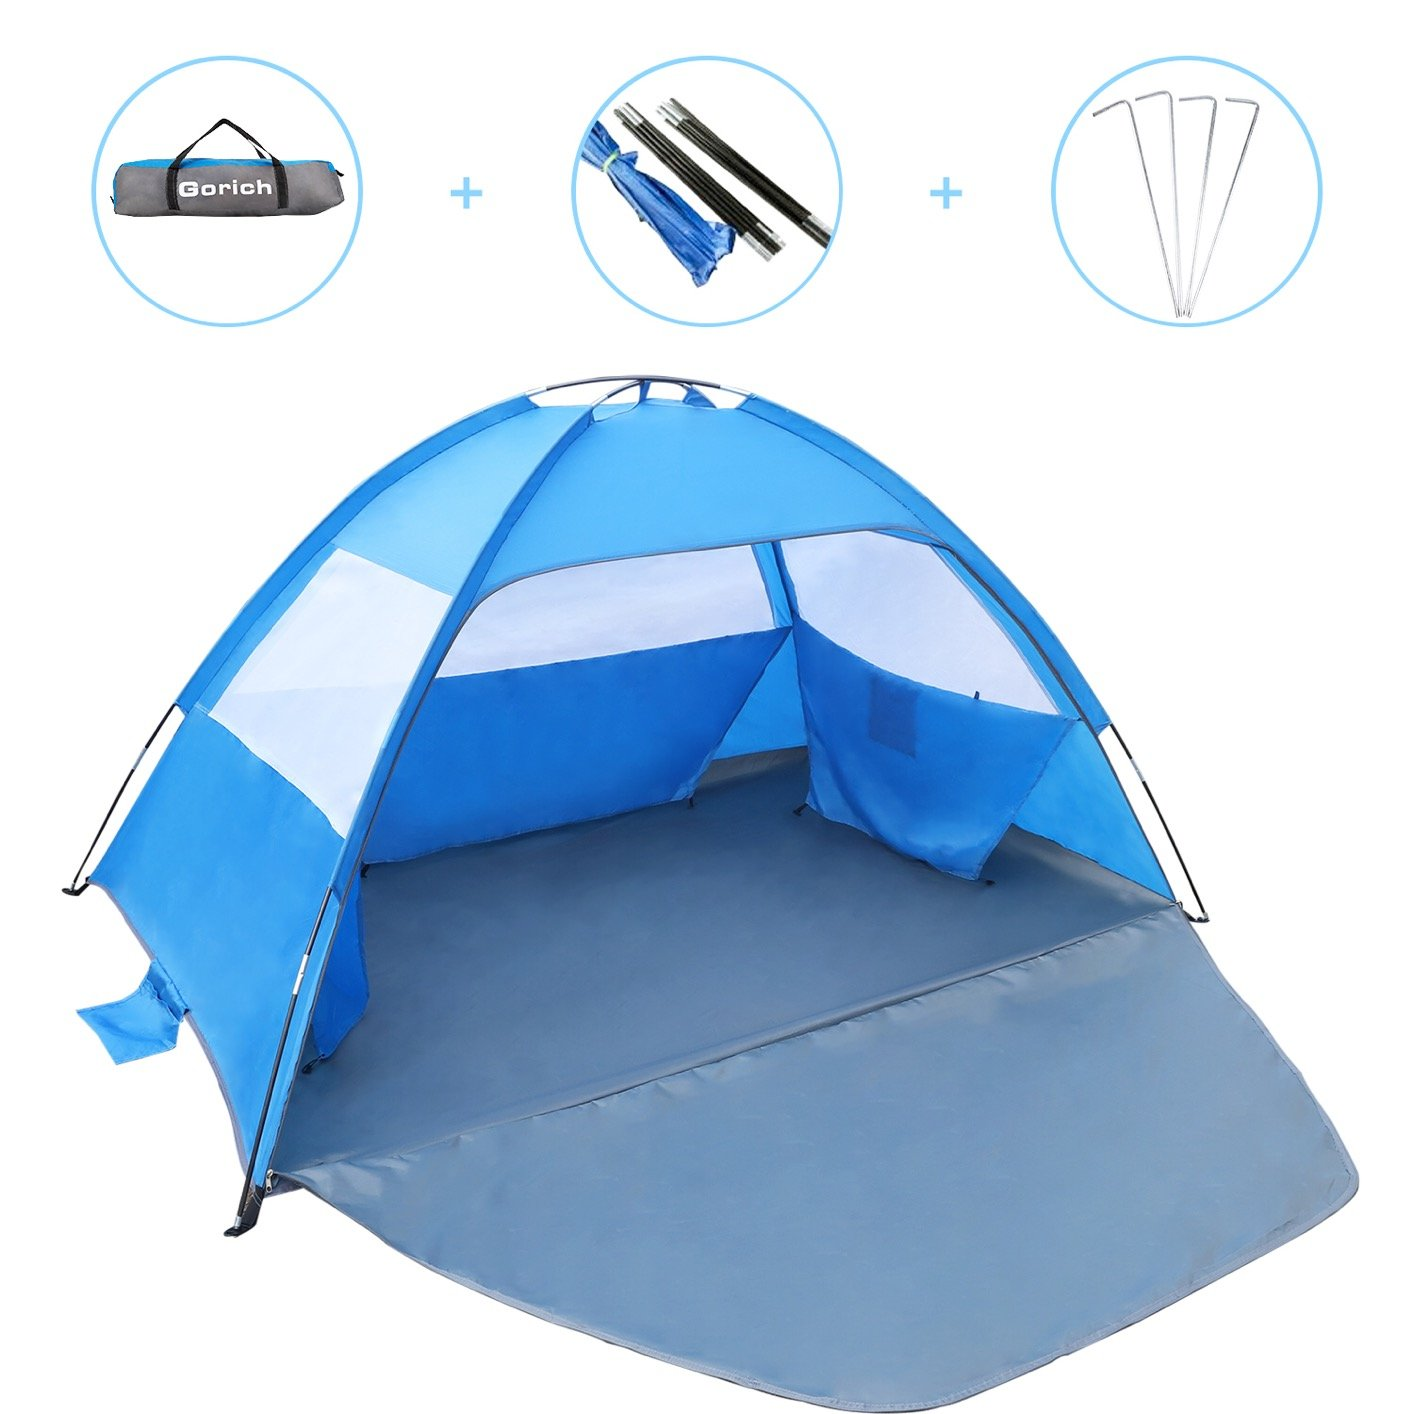 Gorich [2019 New] Beach Tent, UV Sun Shelter Lightweight Beach Sun Shade Canopy Cabana Beach Tents Fit 3-4 Person